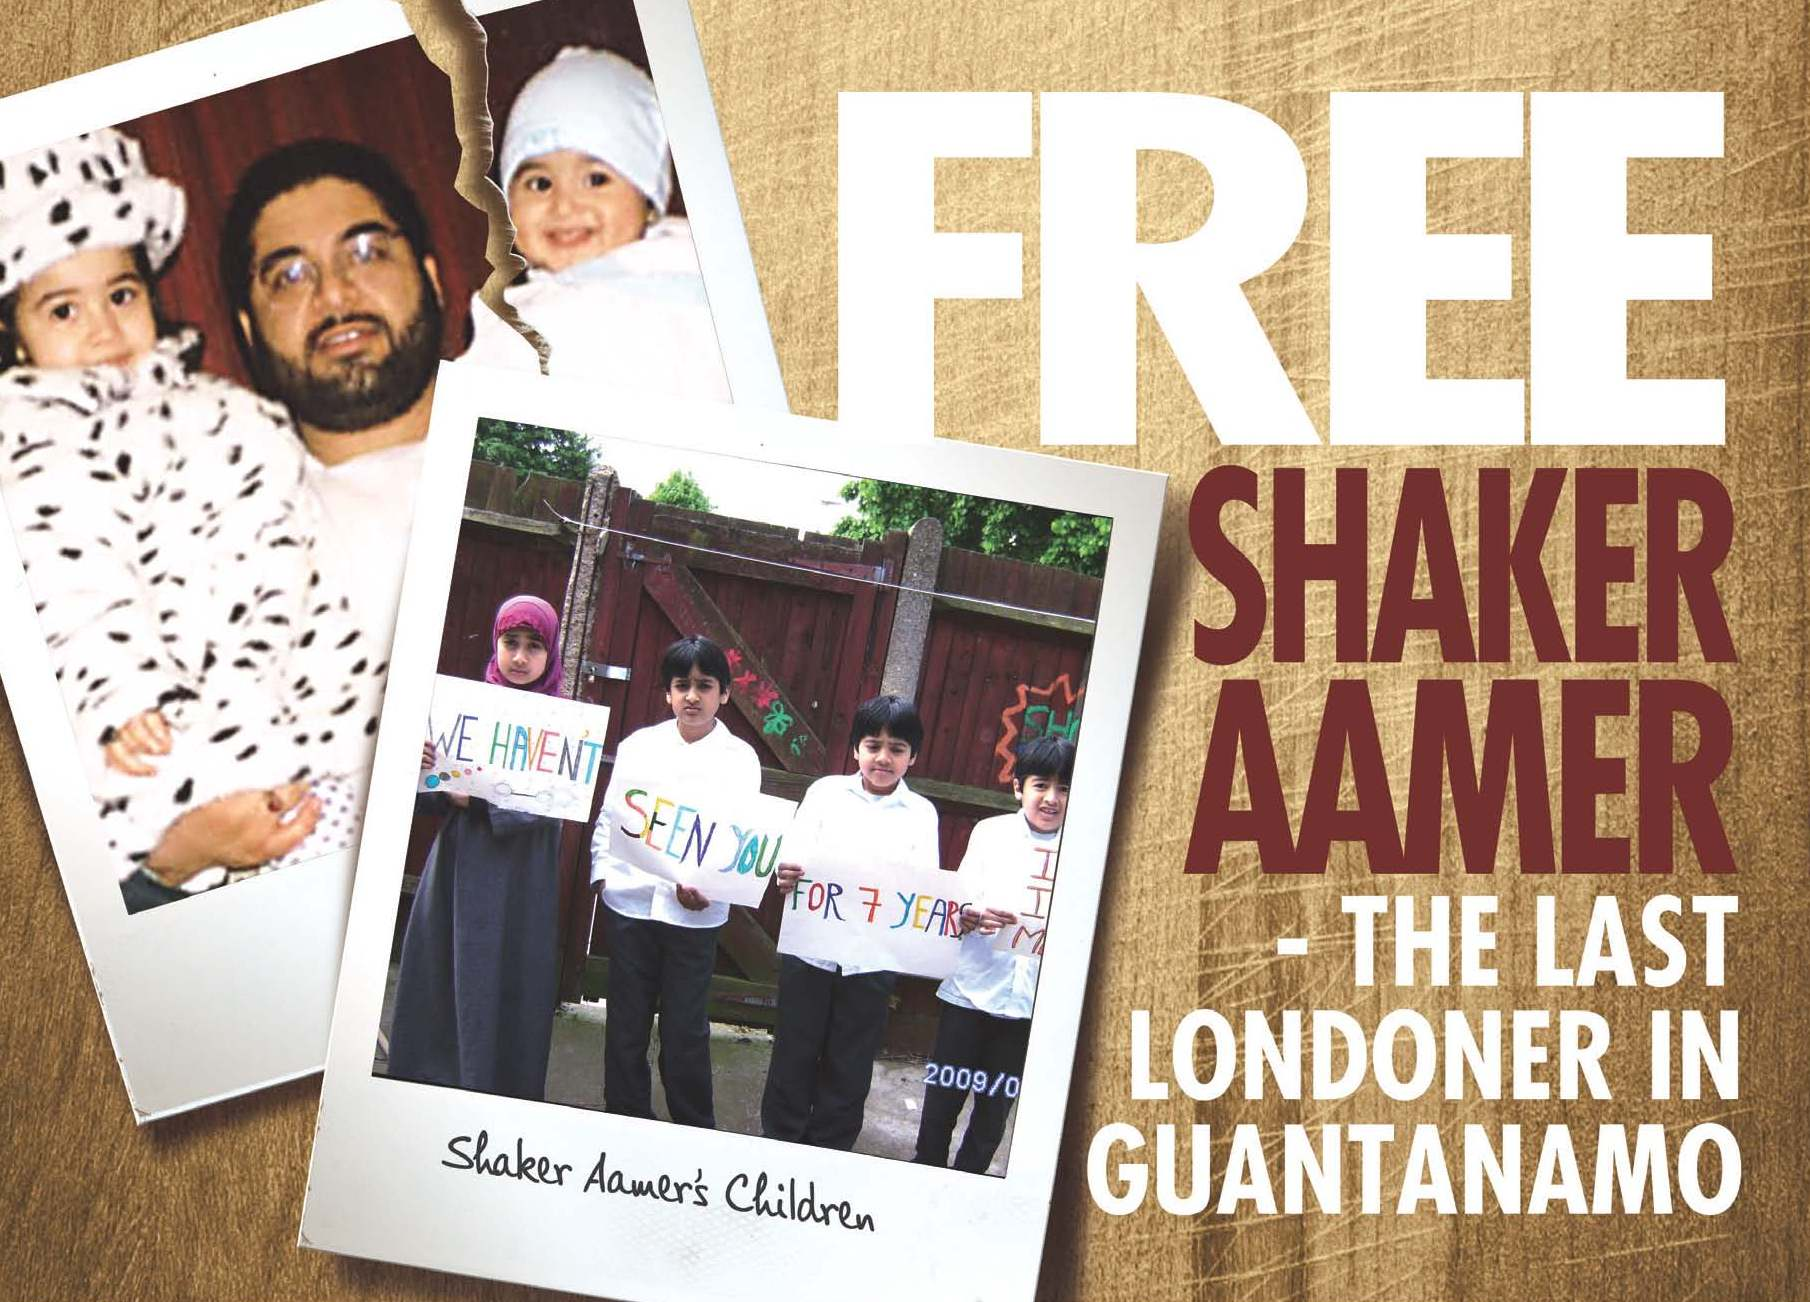 A UK-based campaign petitioning for the release of Shaker Aamer. (Photo courtesy: ummah.com)